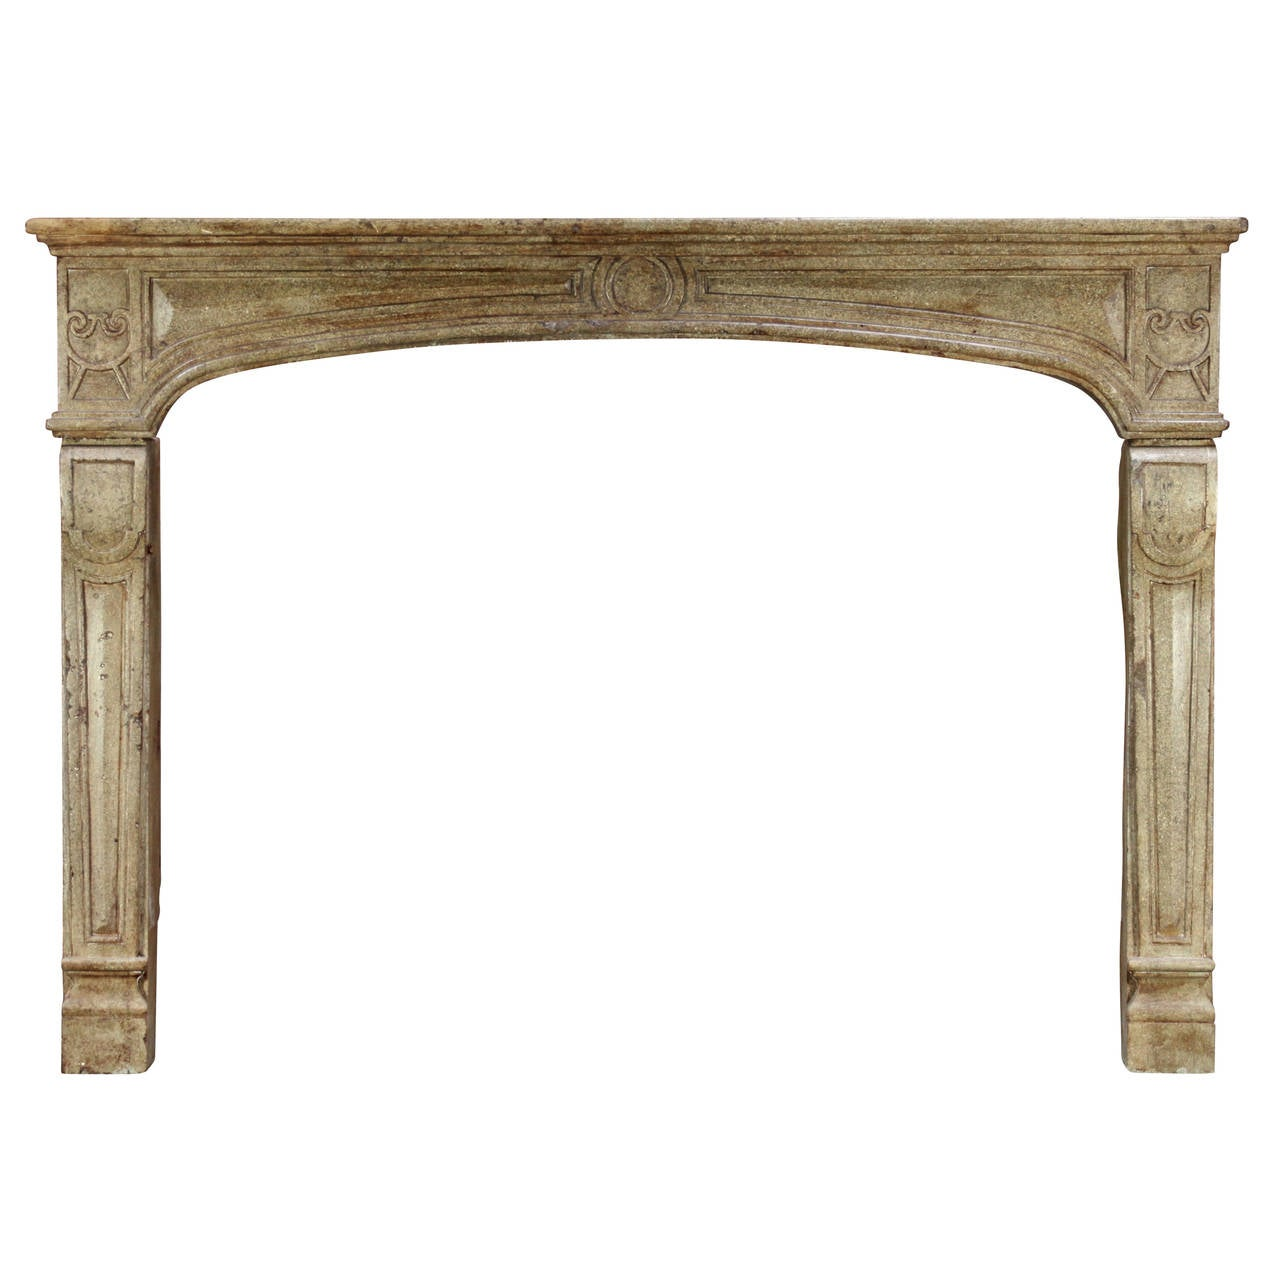 18 Century Hardstone Antique Fireplace Mantel For Sale At 1stdibs